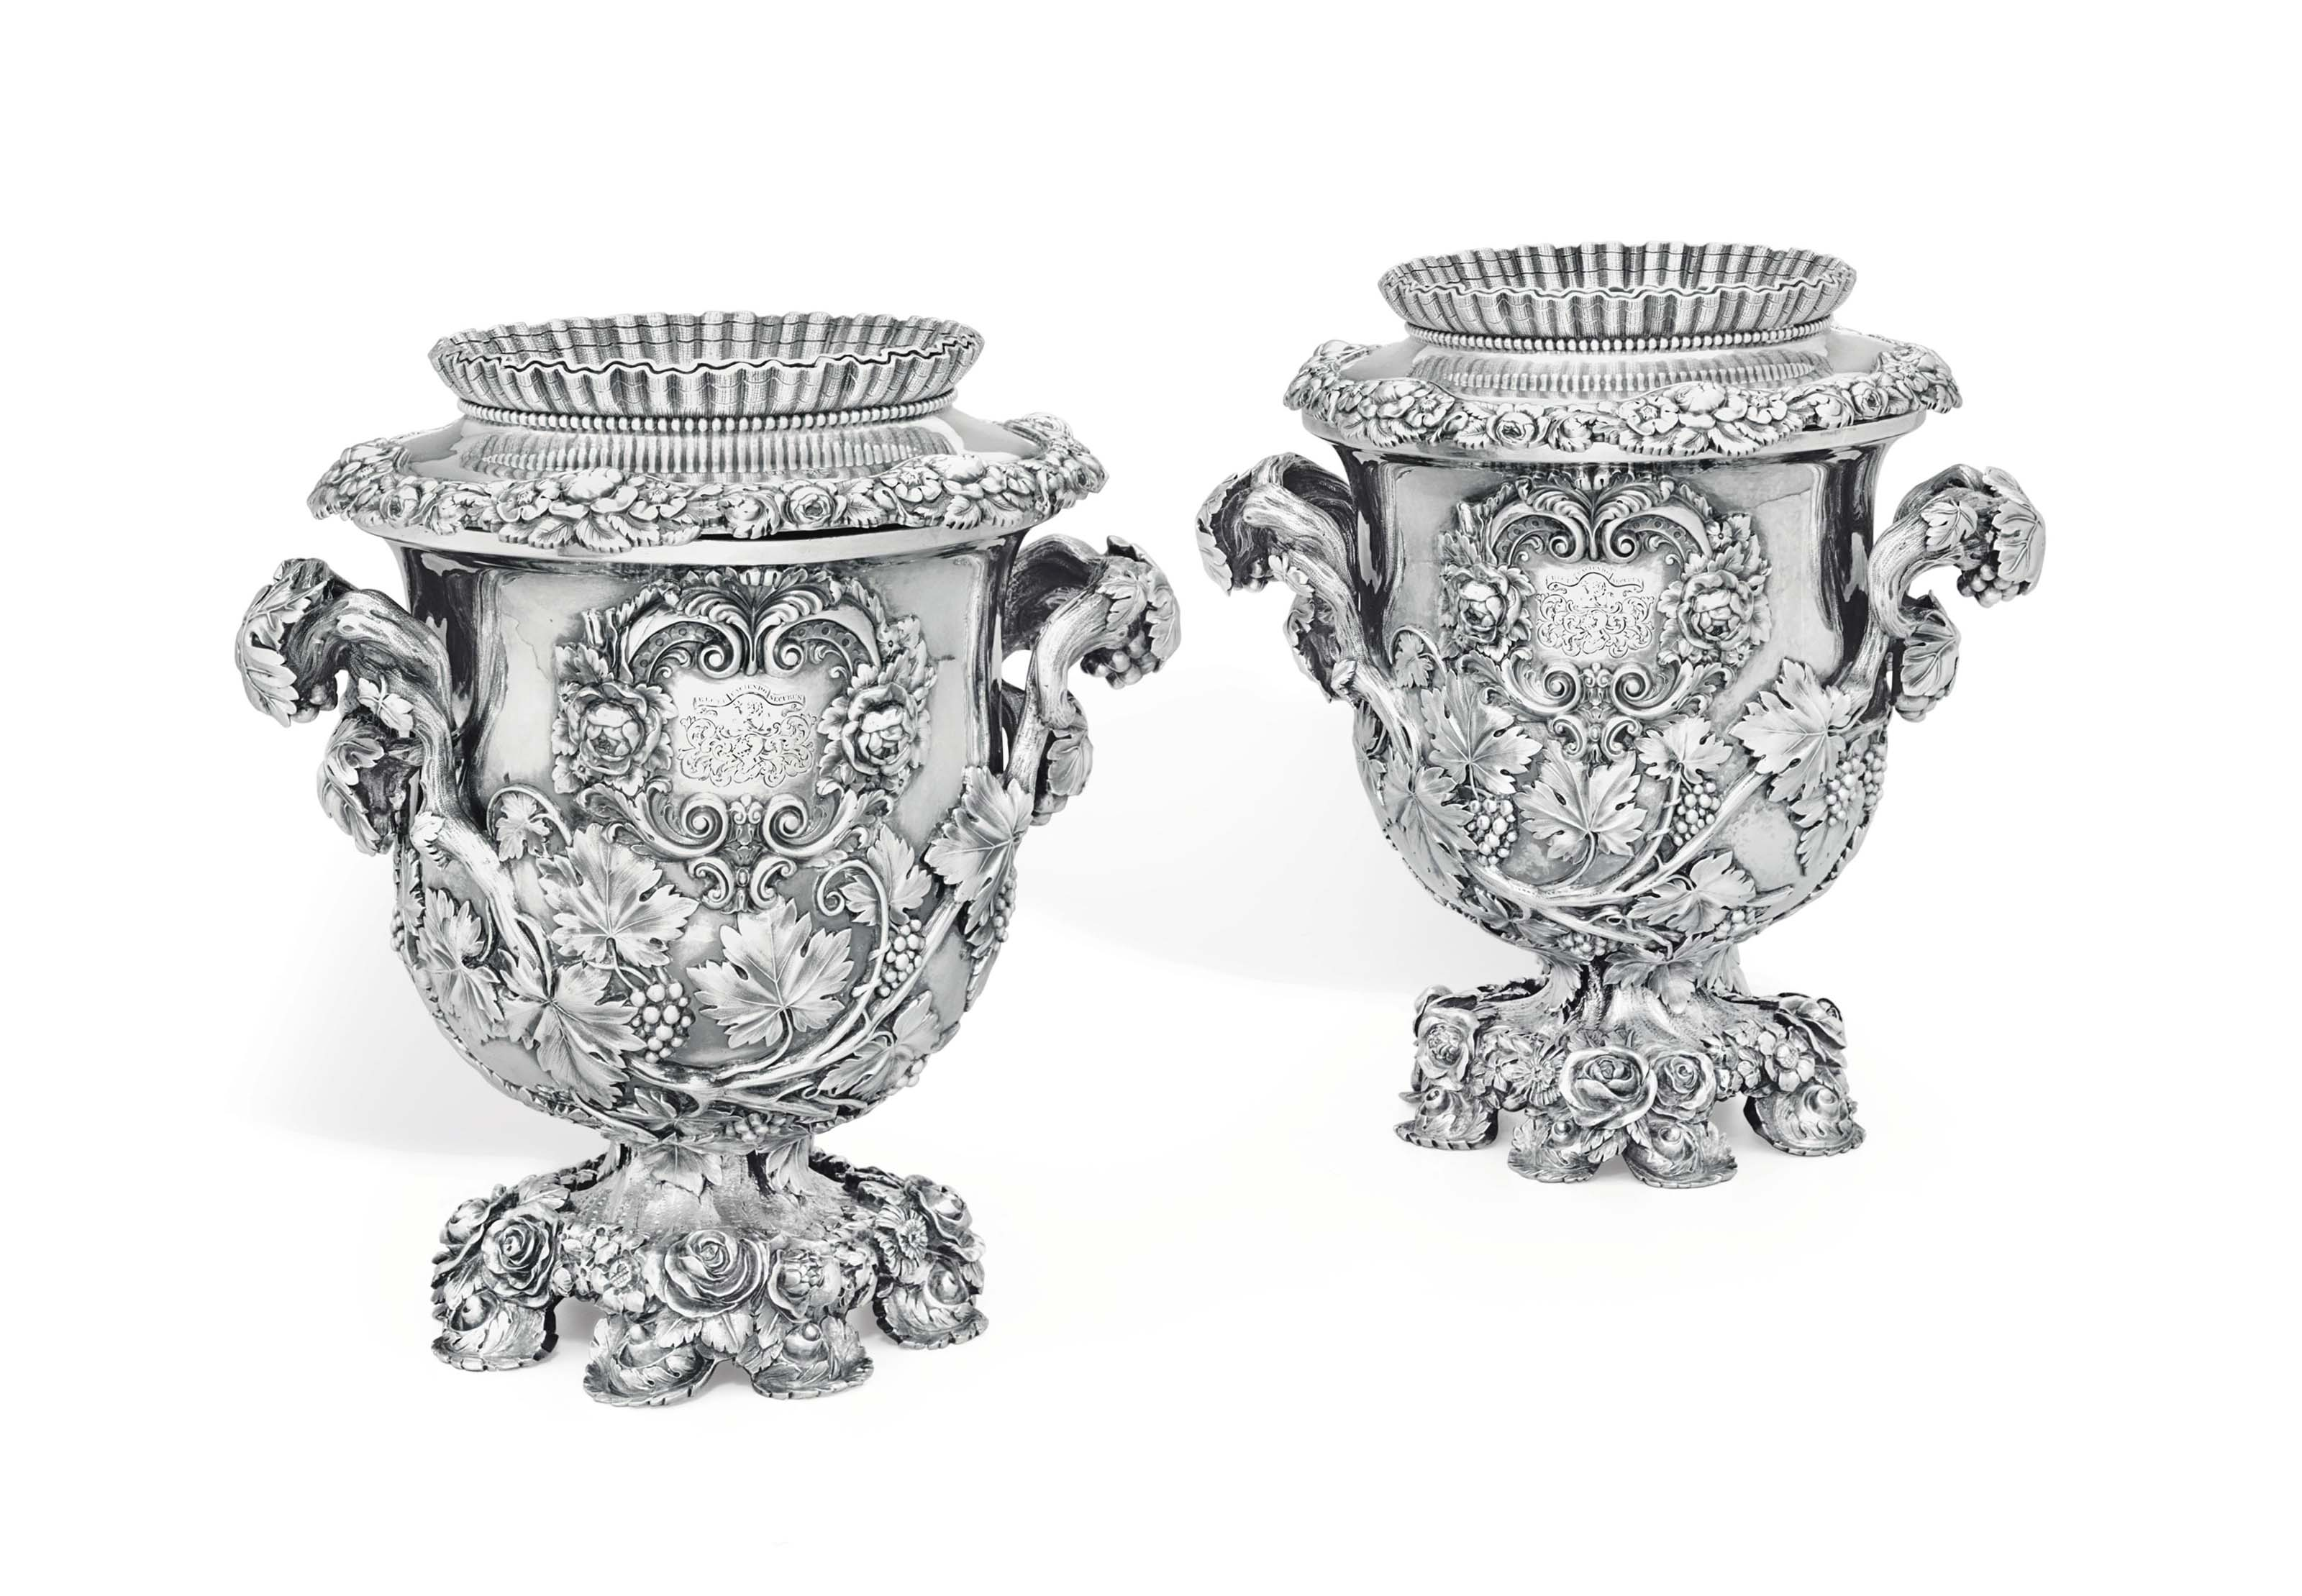 A PAIR OF GEORGE IV SILVER WINE COOLERS